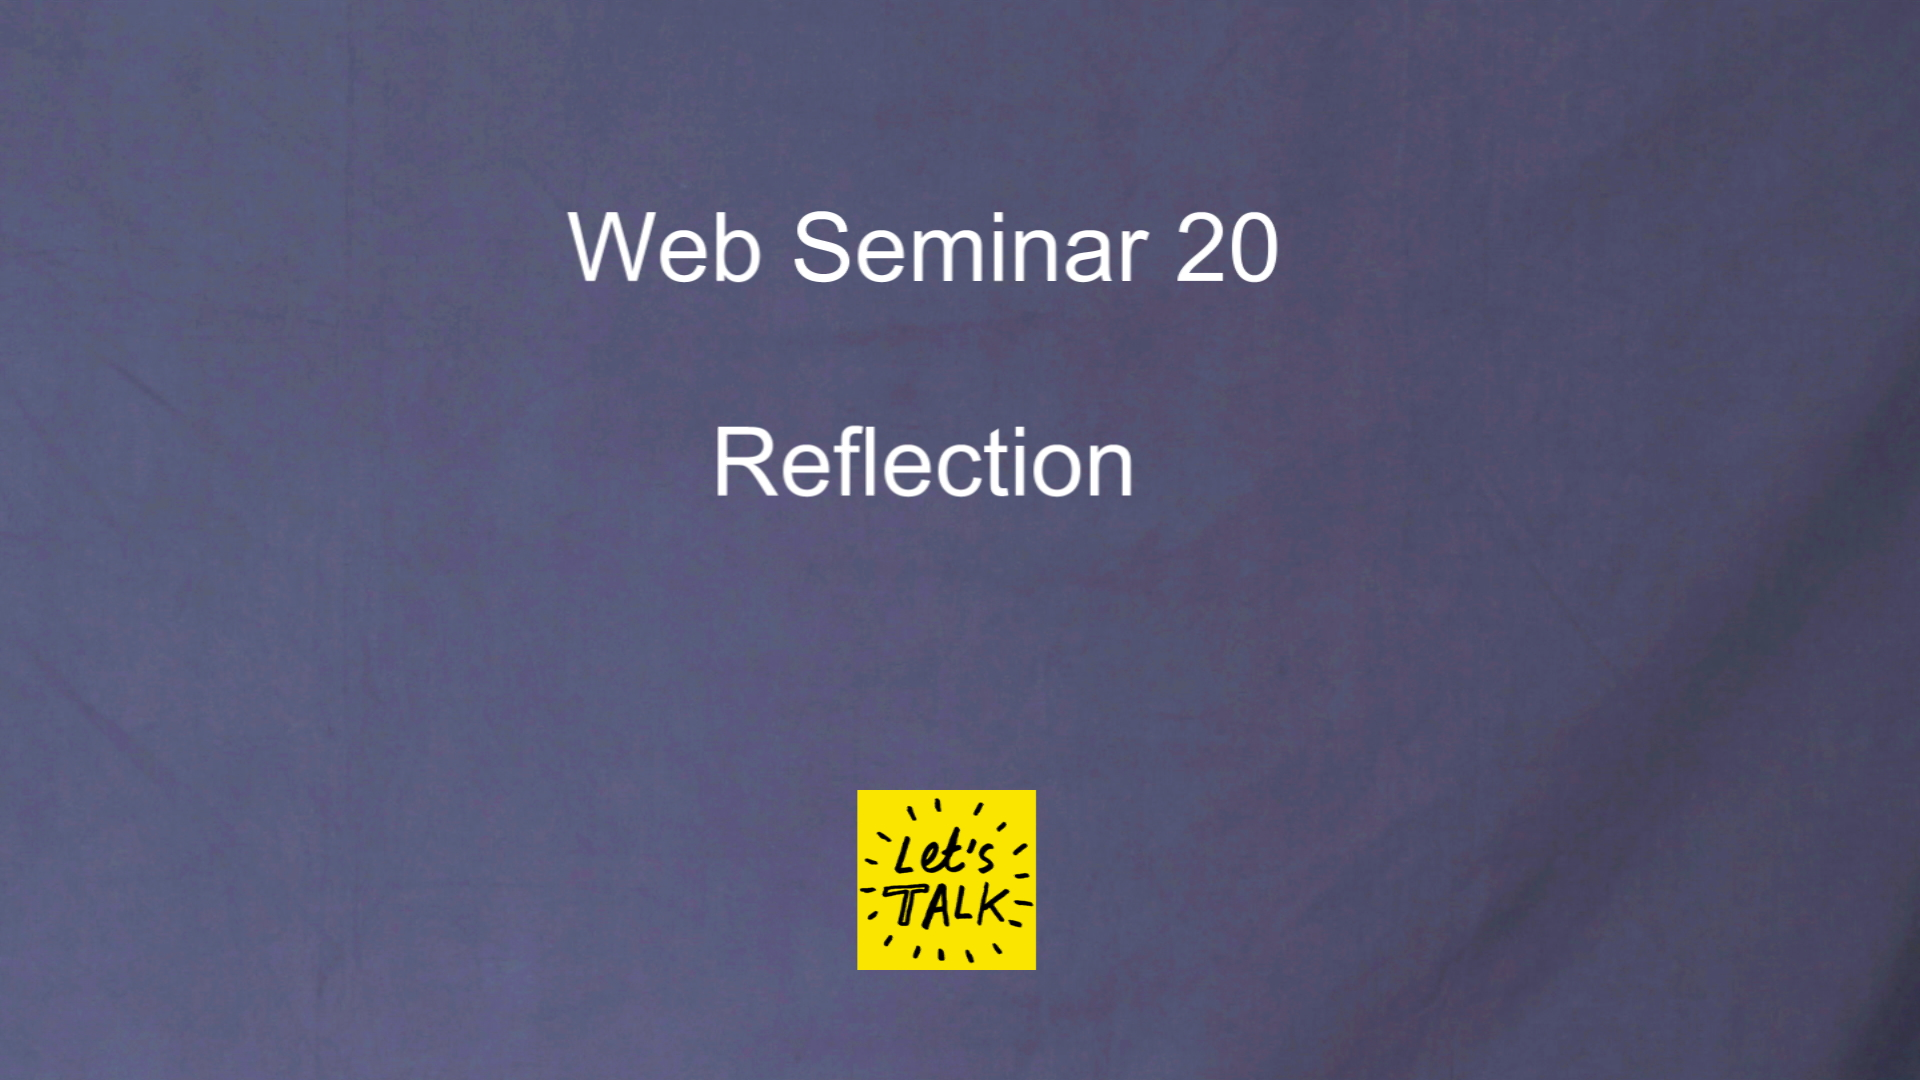 Web Seminar 20 - Reflection